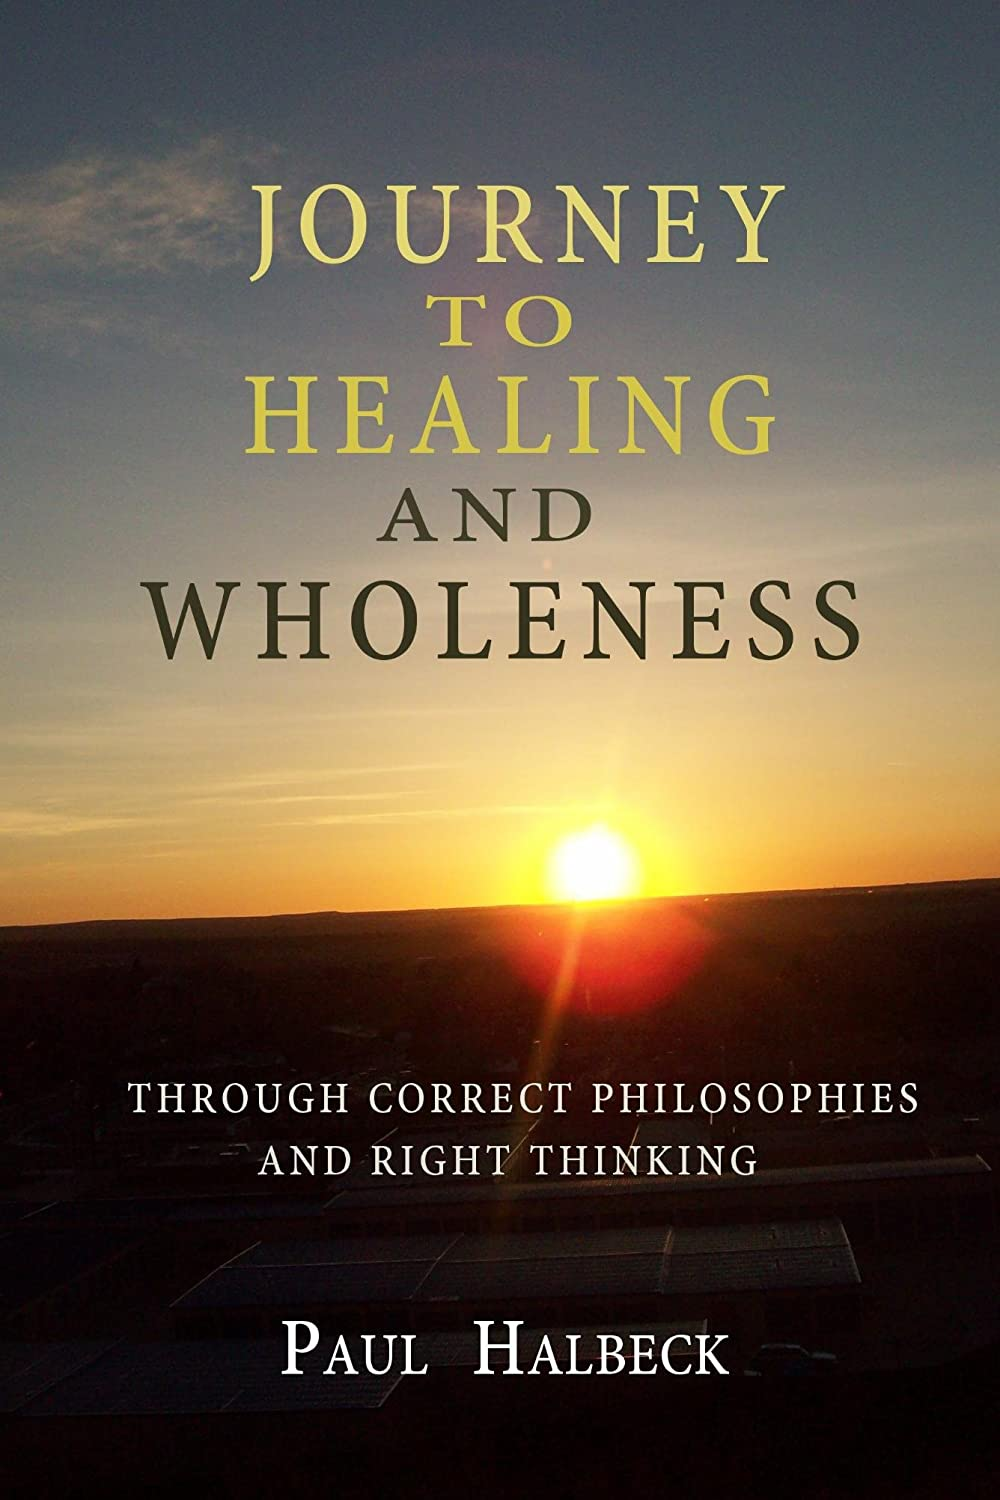 Journey to healing and wholeness: Through correct philosophies and right thinking by Paul Halbeck